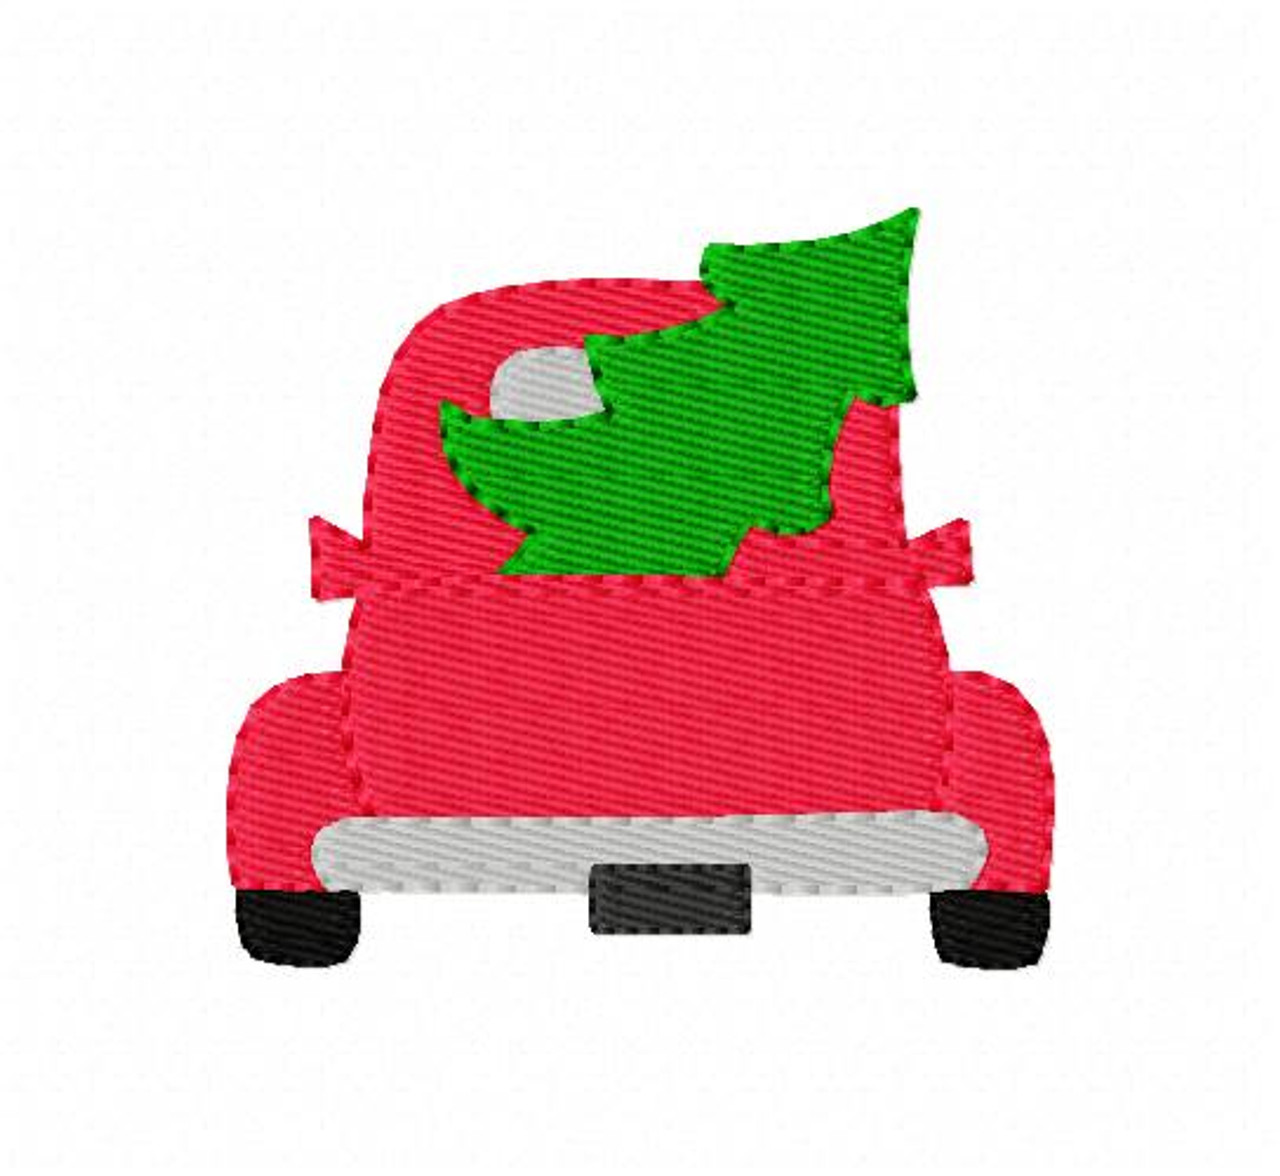 Red Truck With Christmas Tree Machine Embroidery Design 2 Sizes Included Joyful Stitches